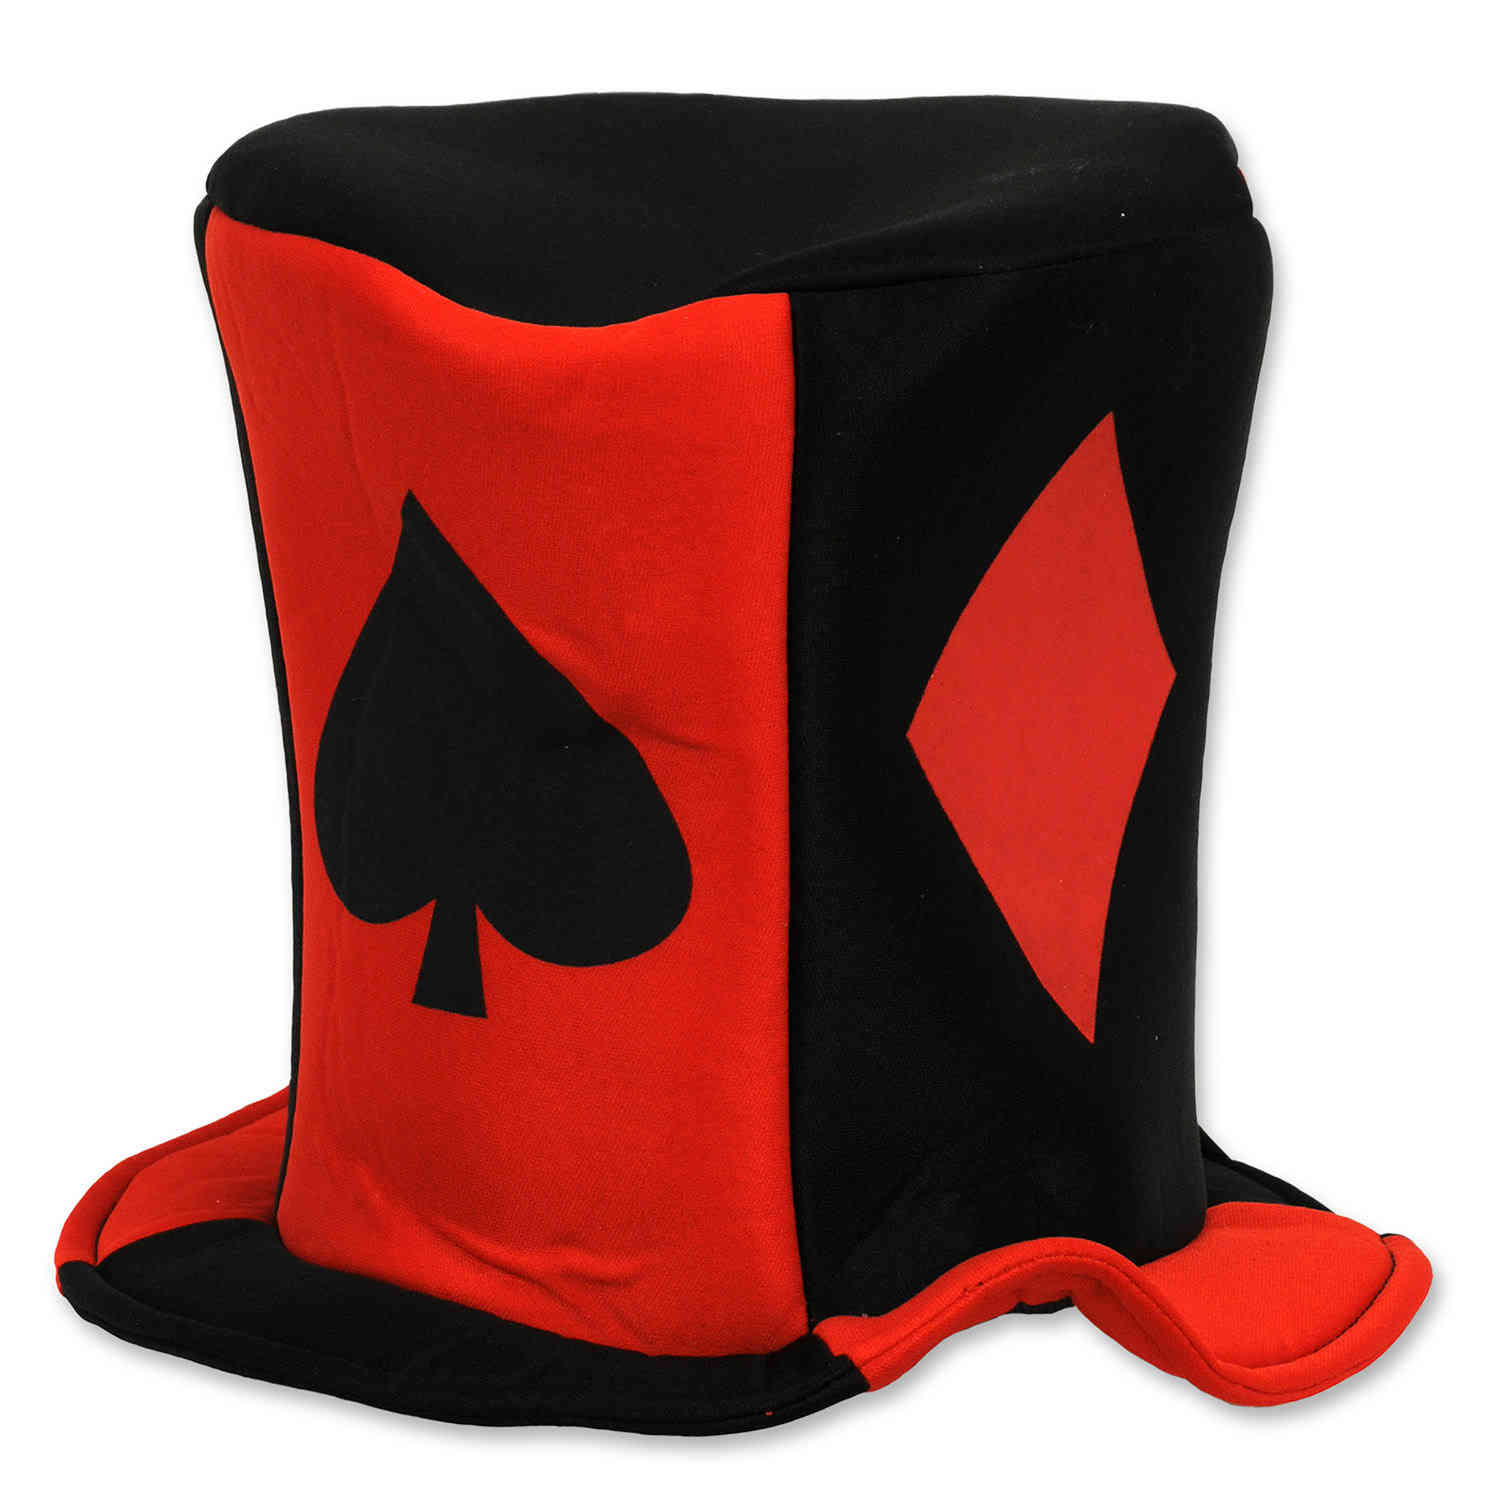 large fabric hat with playing card suit designs